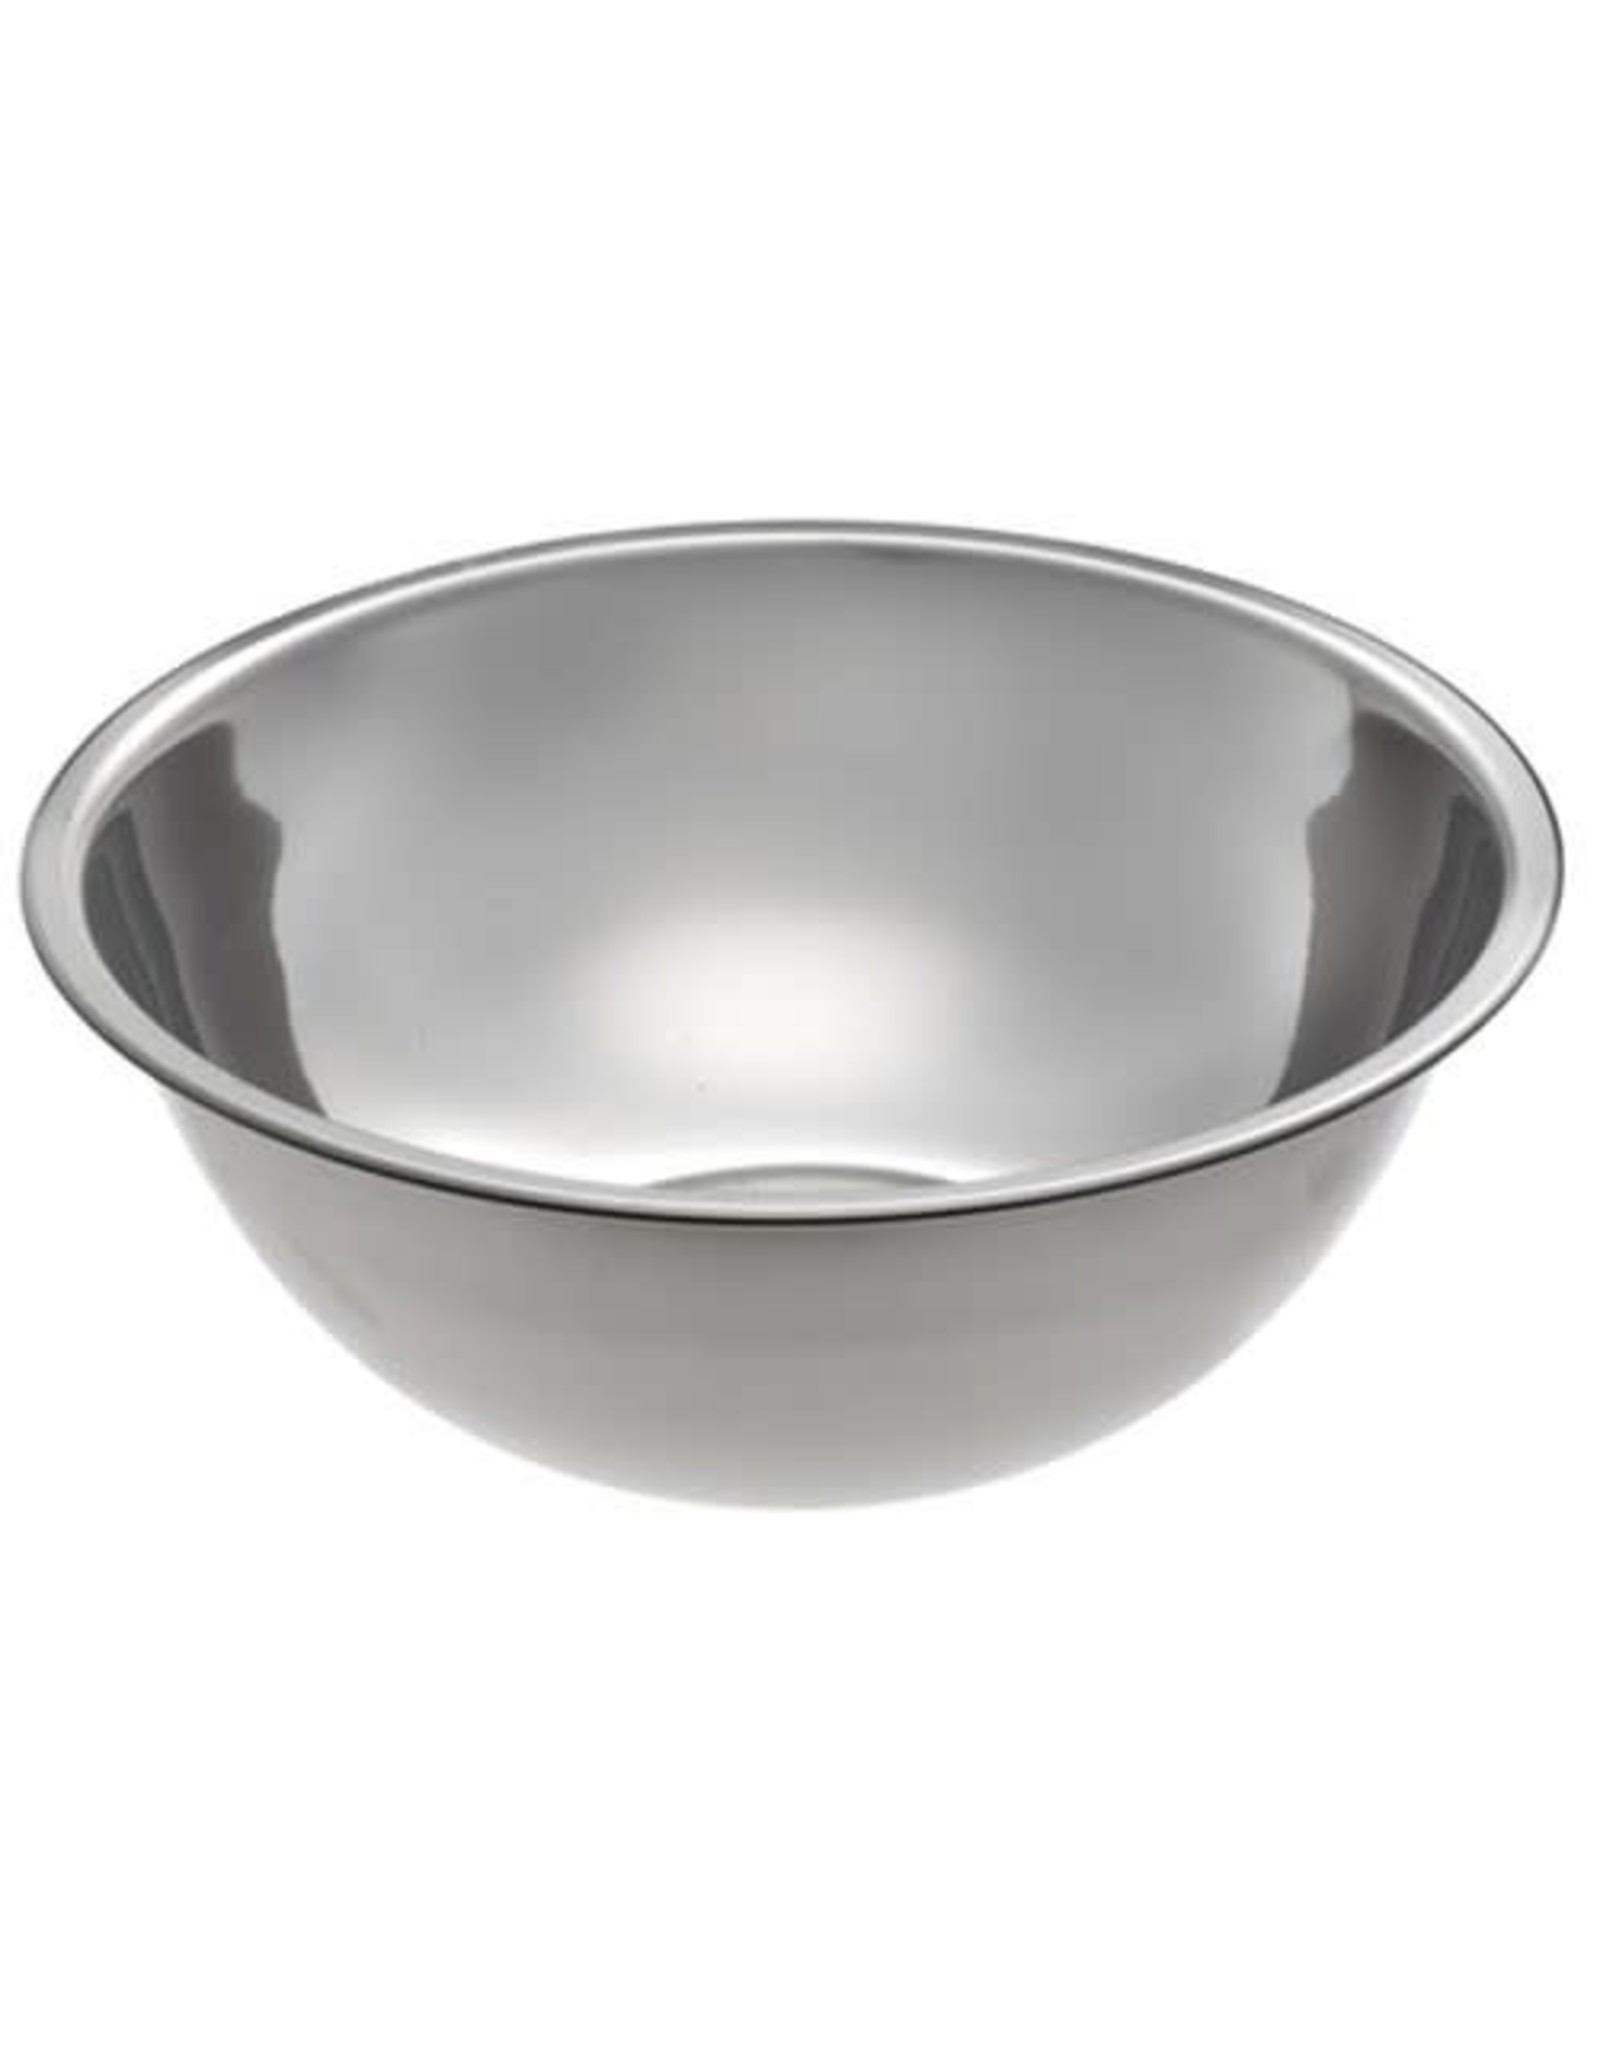 STAINLESS STEEL BOWL, 8.0qt DEEP